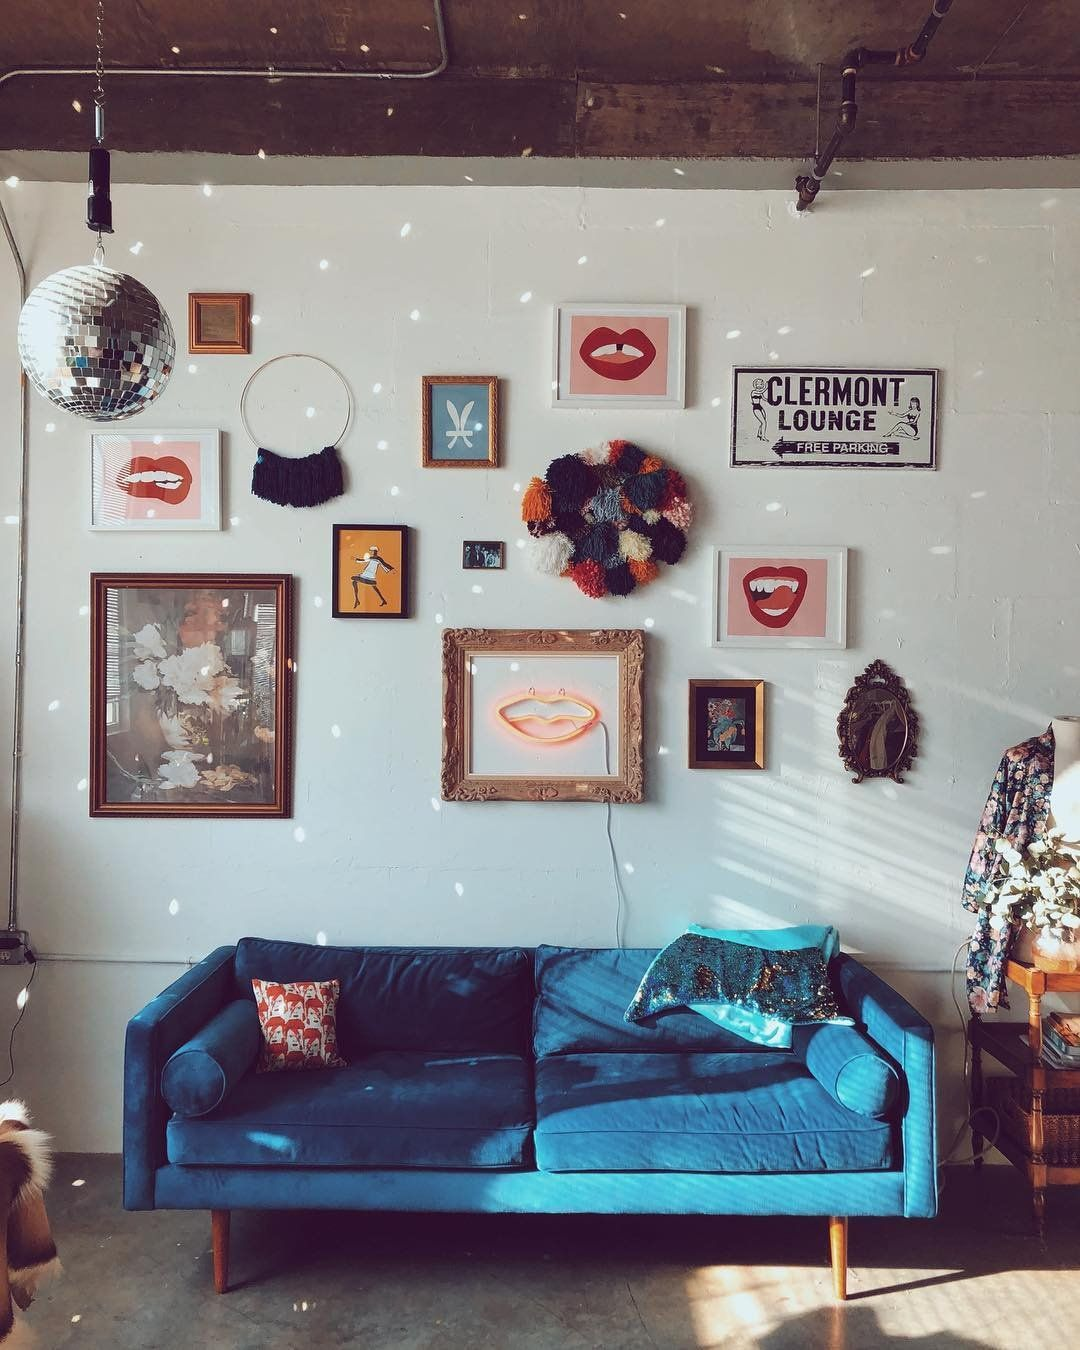 Pin by urban outfitters on wall space living room decor - Funky decorating ideas for living rooms ...